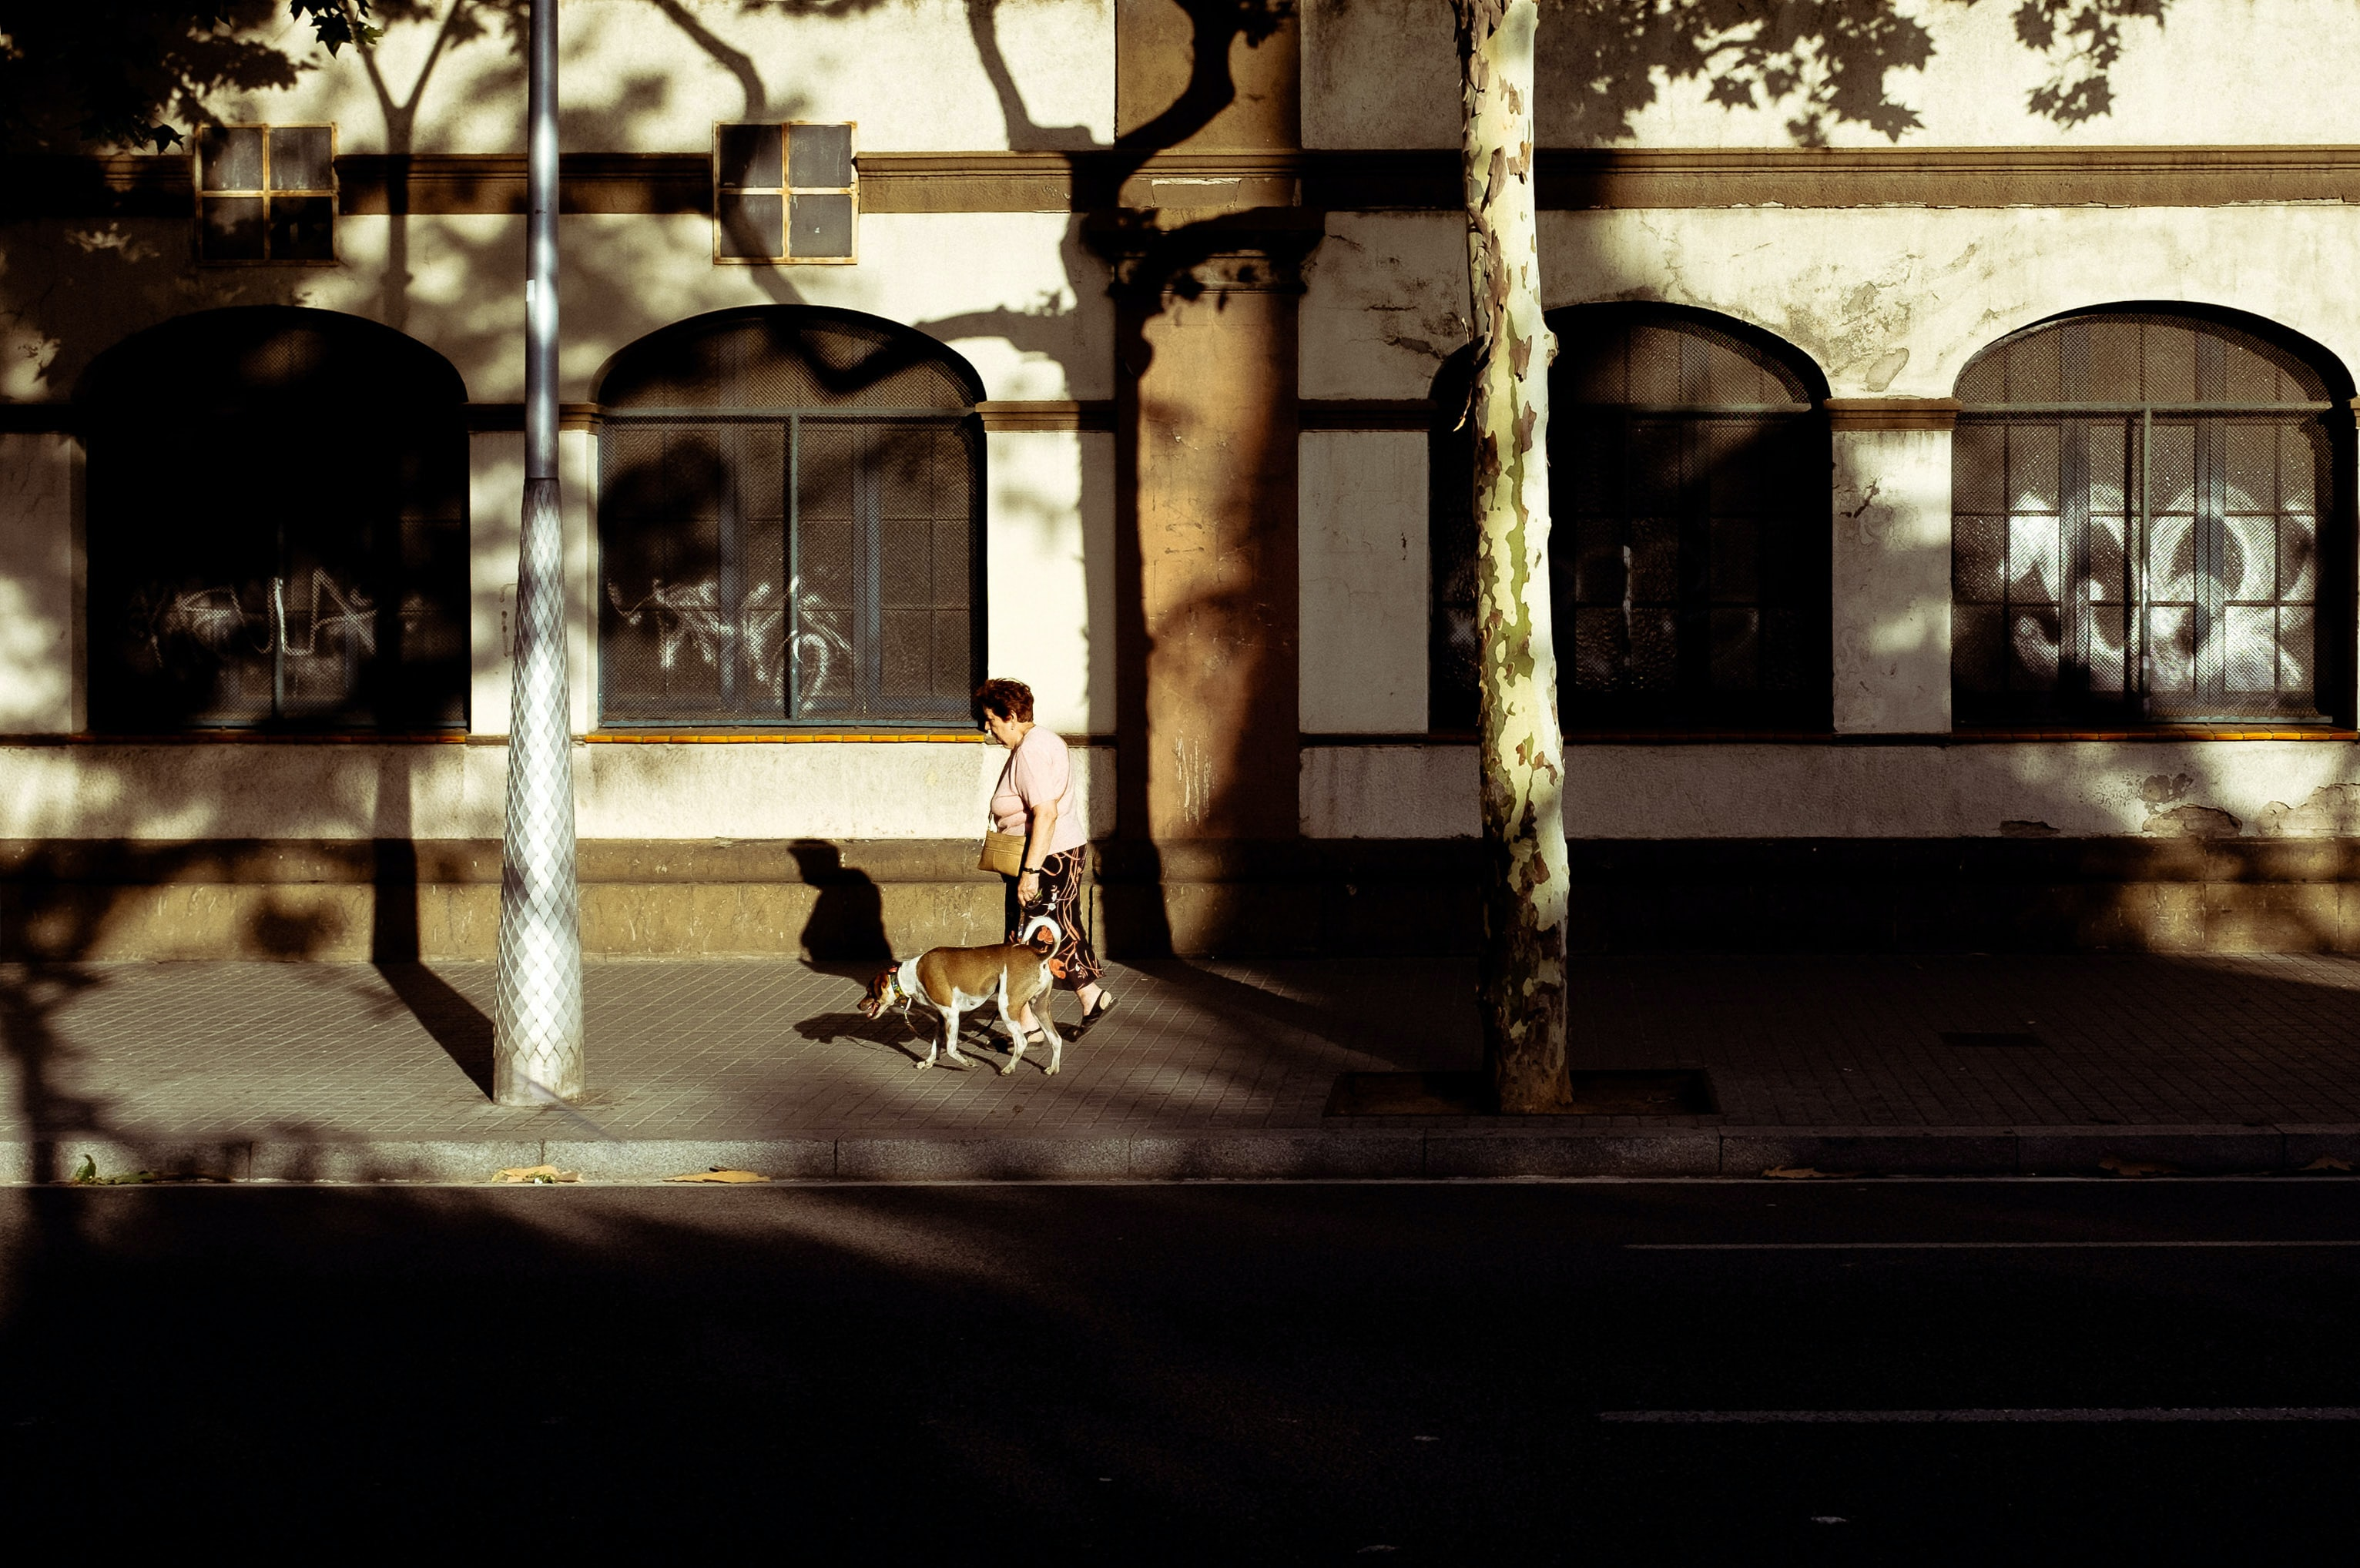 A woman walking her dog on an empty sidewalk in a city